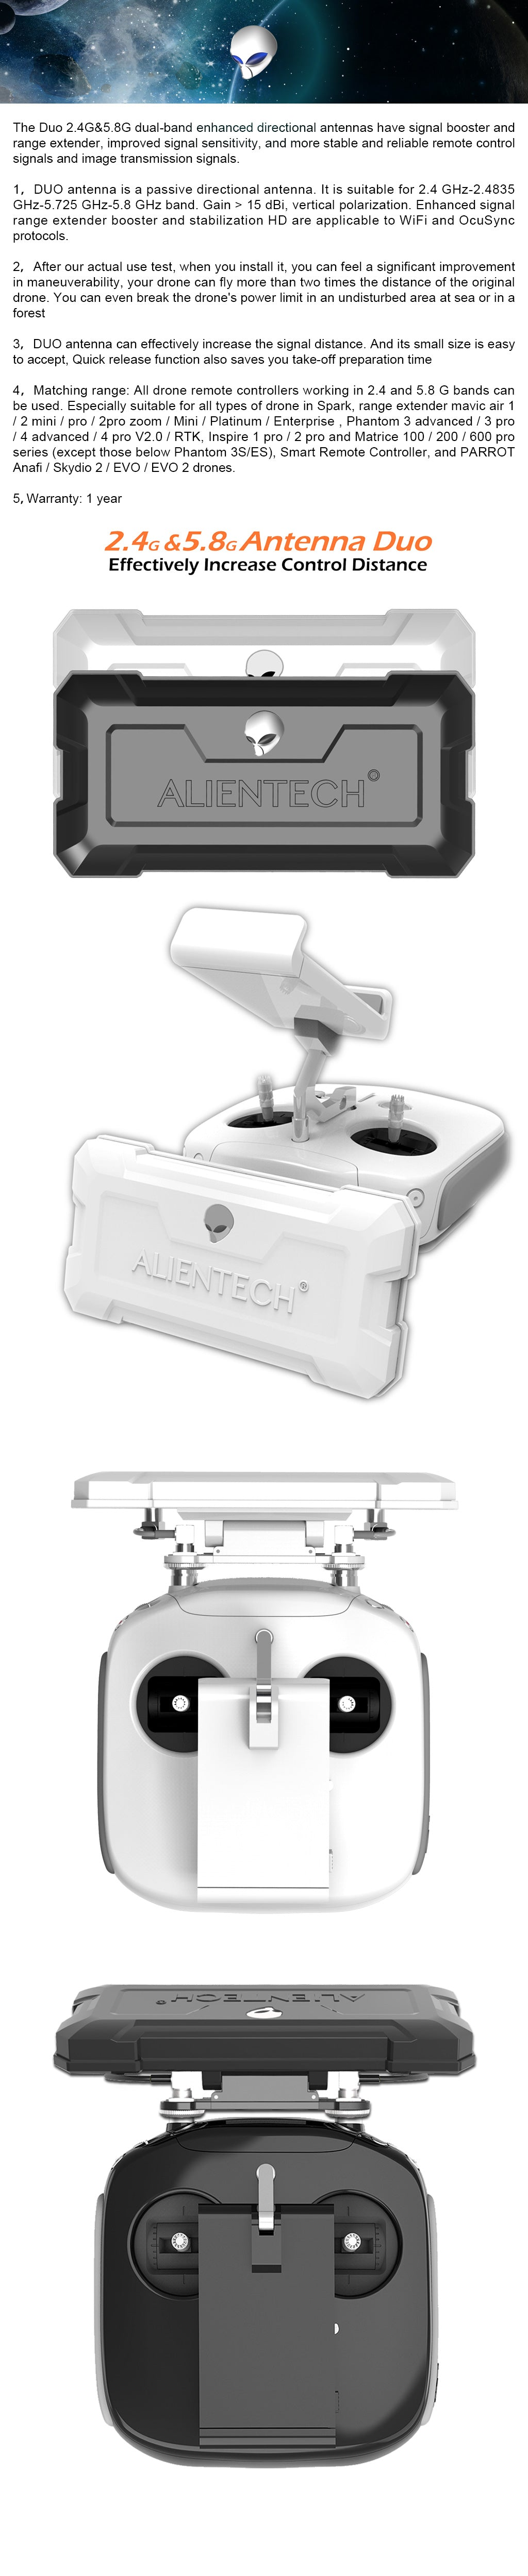 Alientech duo antenna for DJI Phantom 3 4 Advanced Pro V2.0 RTK drones